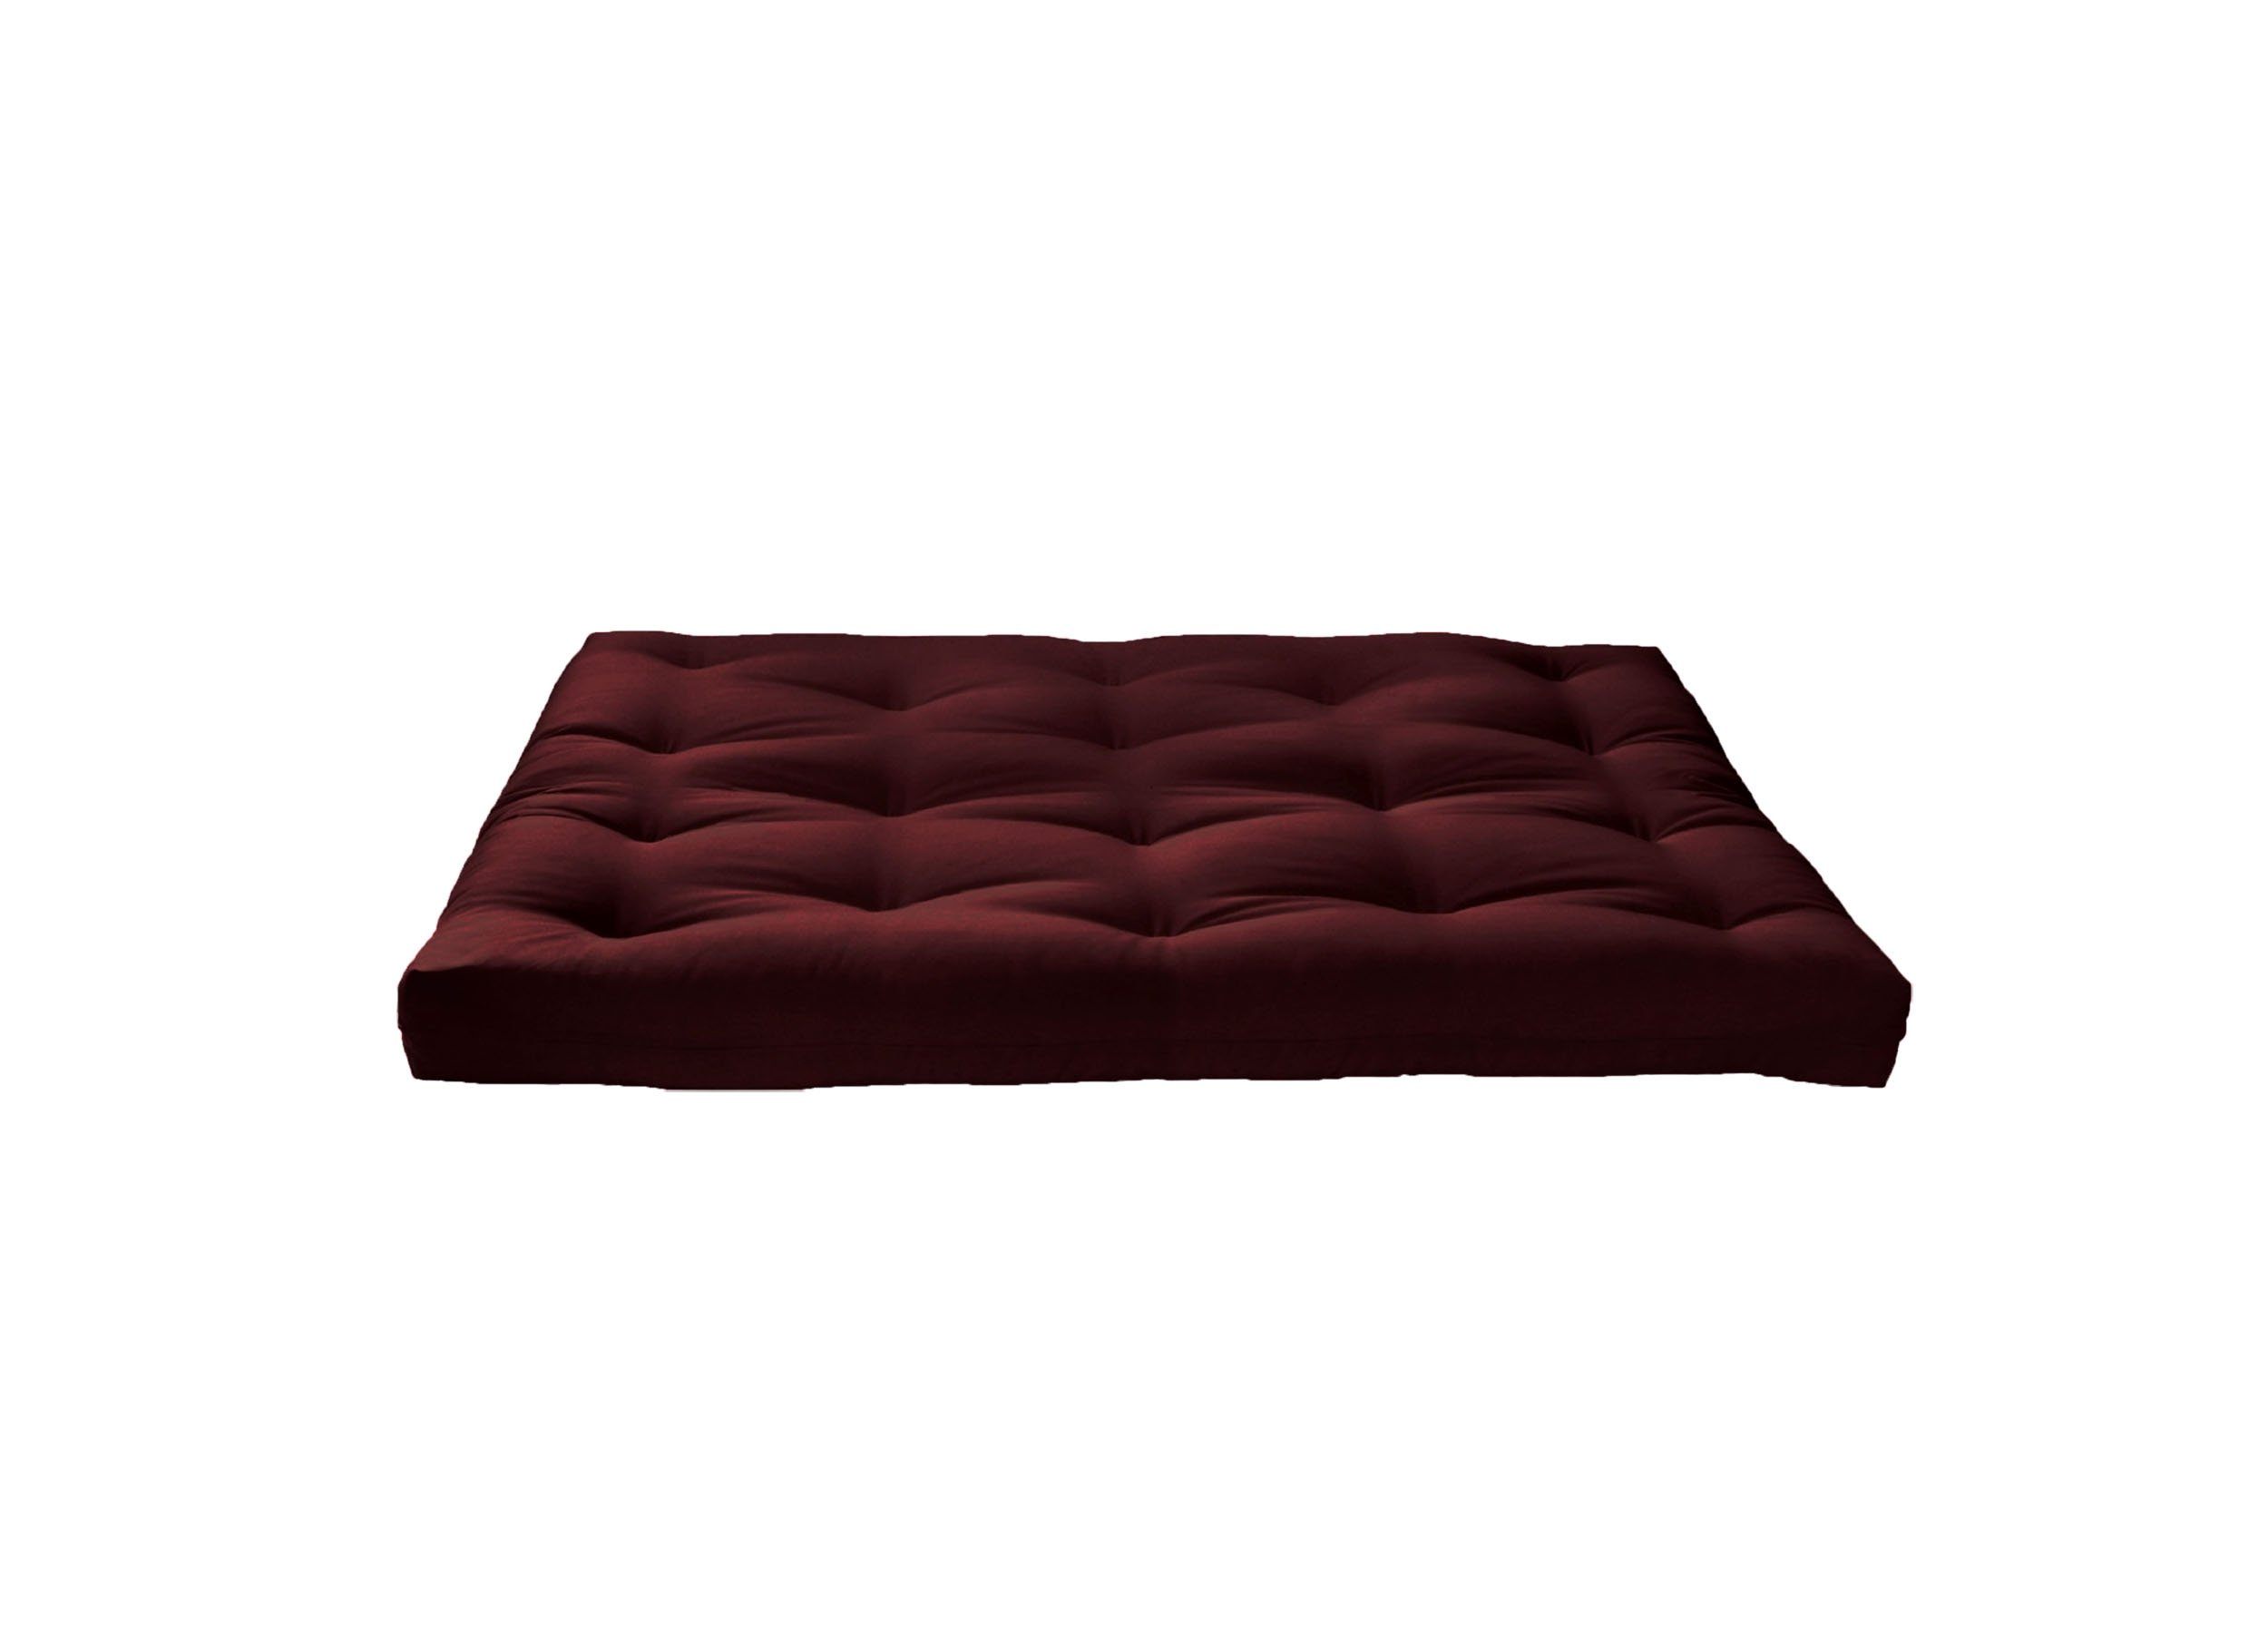 Artiva USA Home Deluxe 8'' Futon Sofa Mattress with Inner Spring Made in US Best Quality for Long-Lasting Use, Solid, Full, Dark Burgundy by Artiva USA